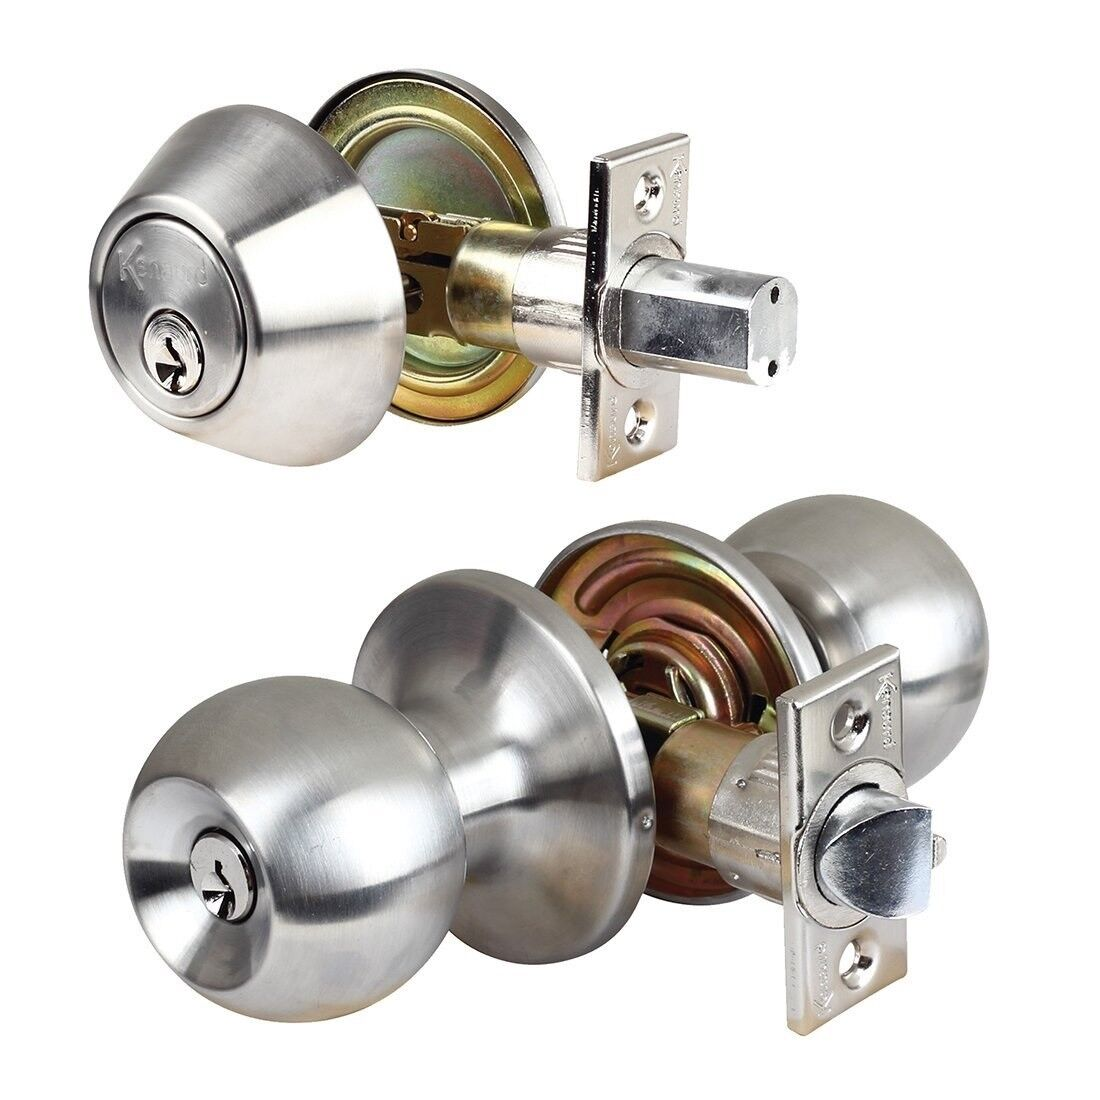 Ferum Ultra Ball Knob Entrance Door Lock US32D Stainless Steel 44233 5346us32dkd